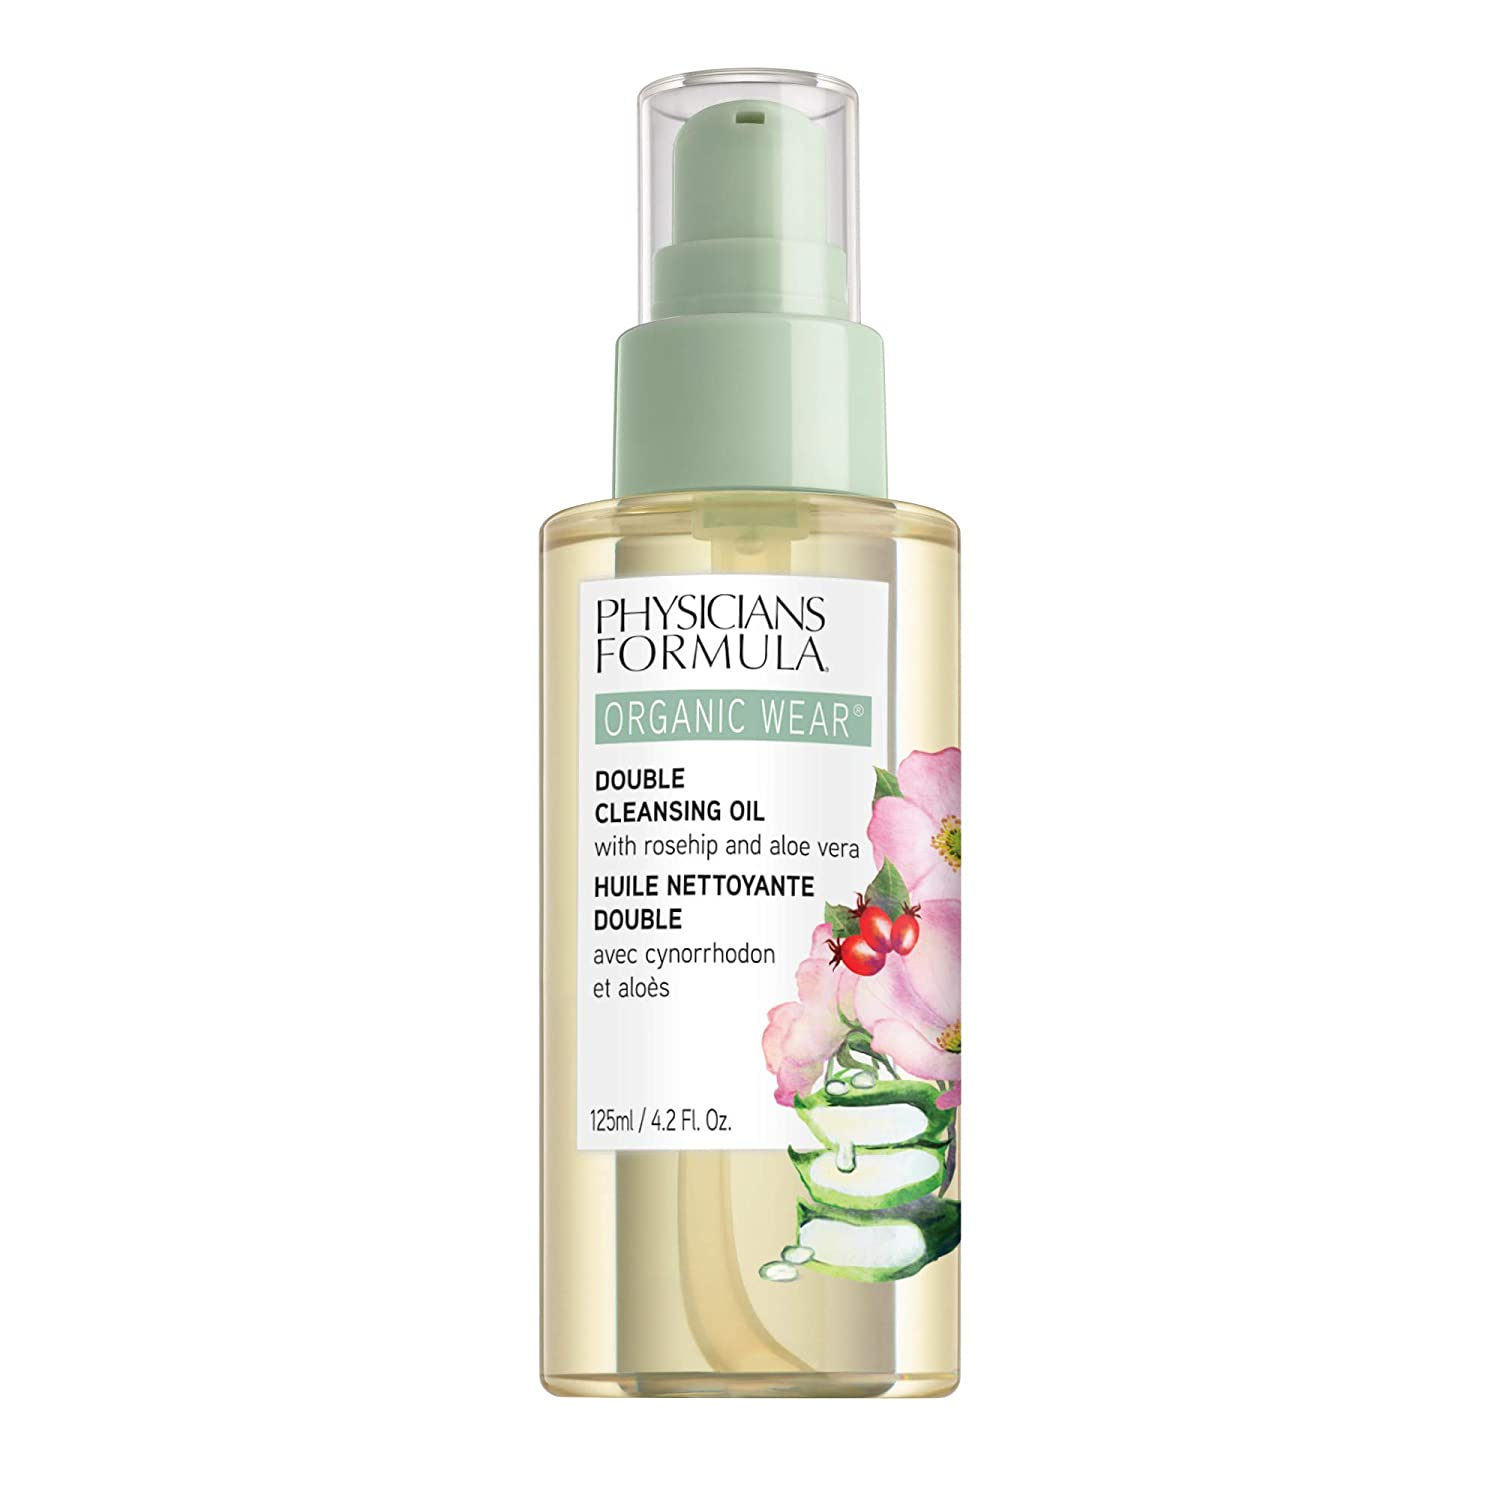 Physicians Formula Organic Wear Double Cleansing Oil, Cleanse, 0.42 Fl Ounce